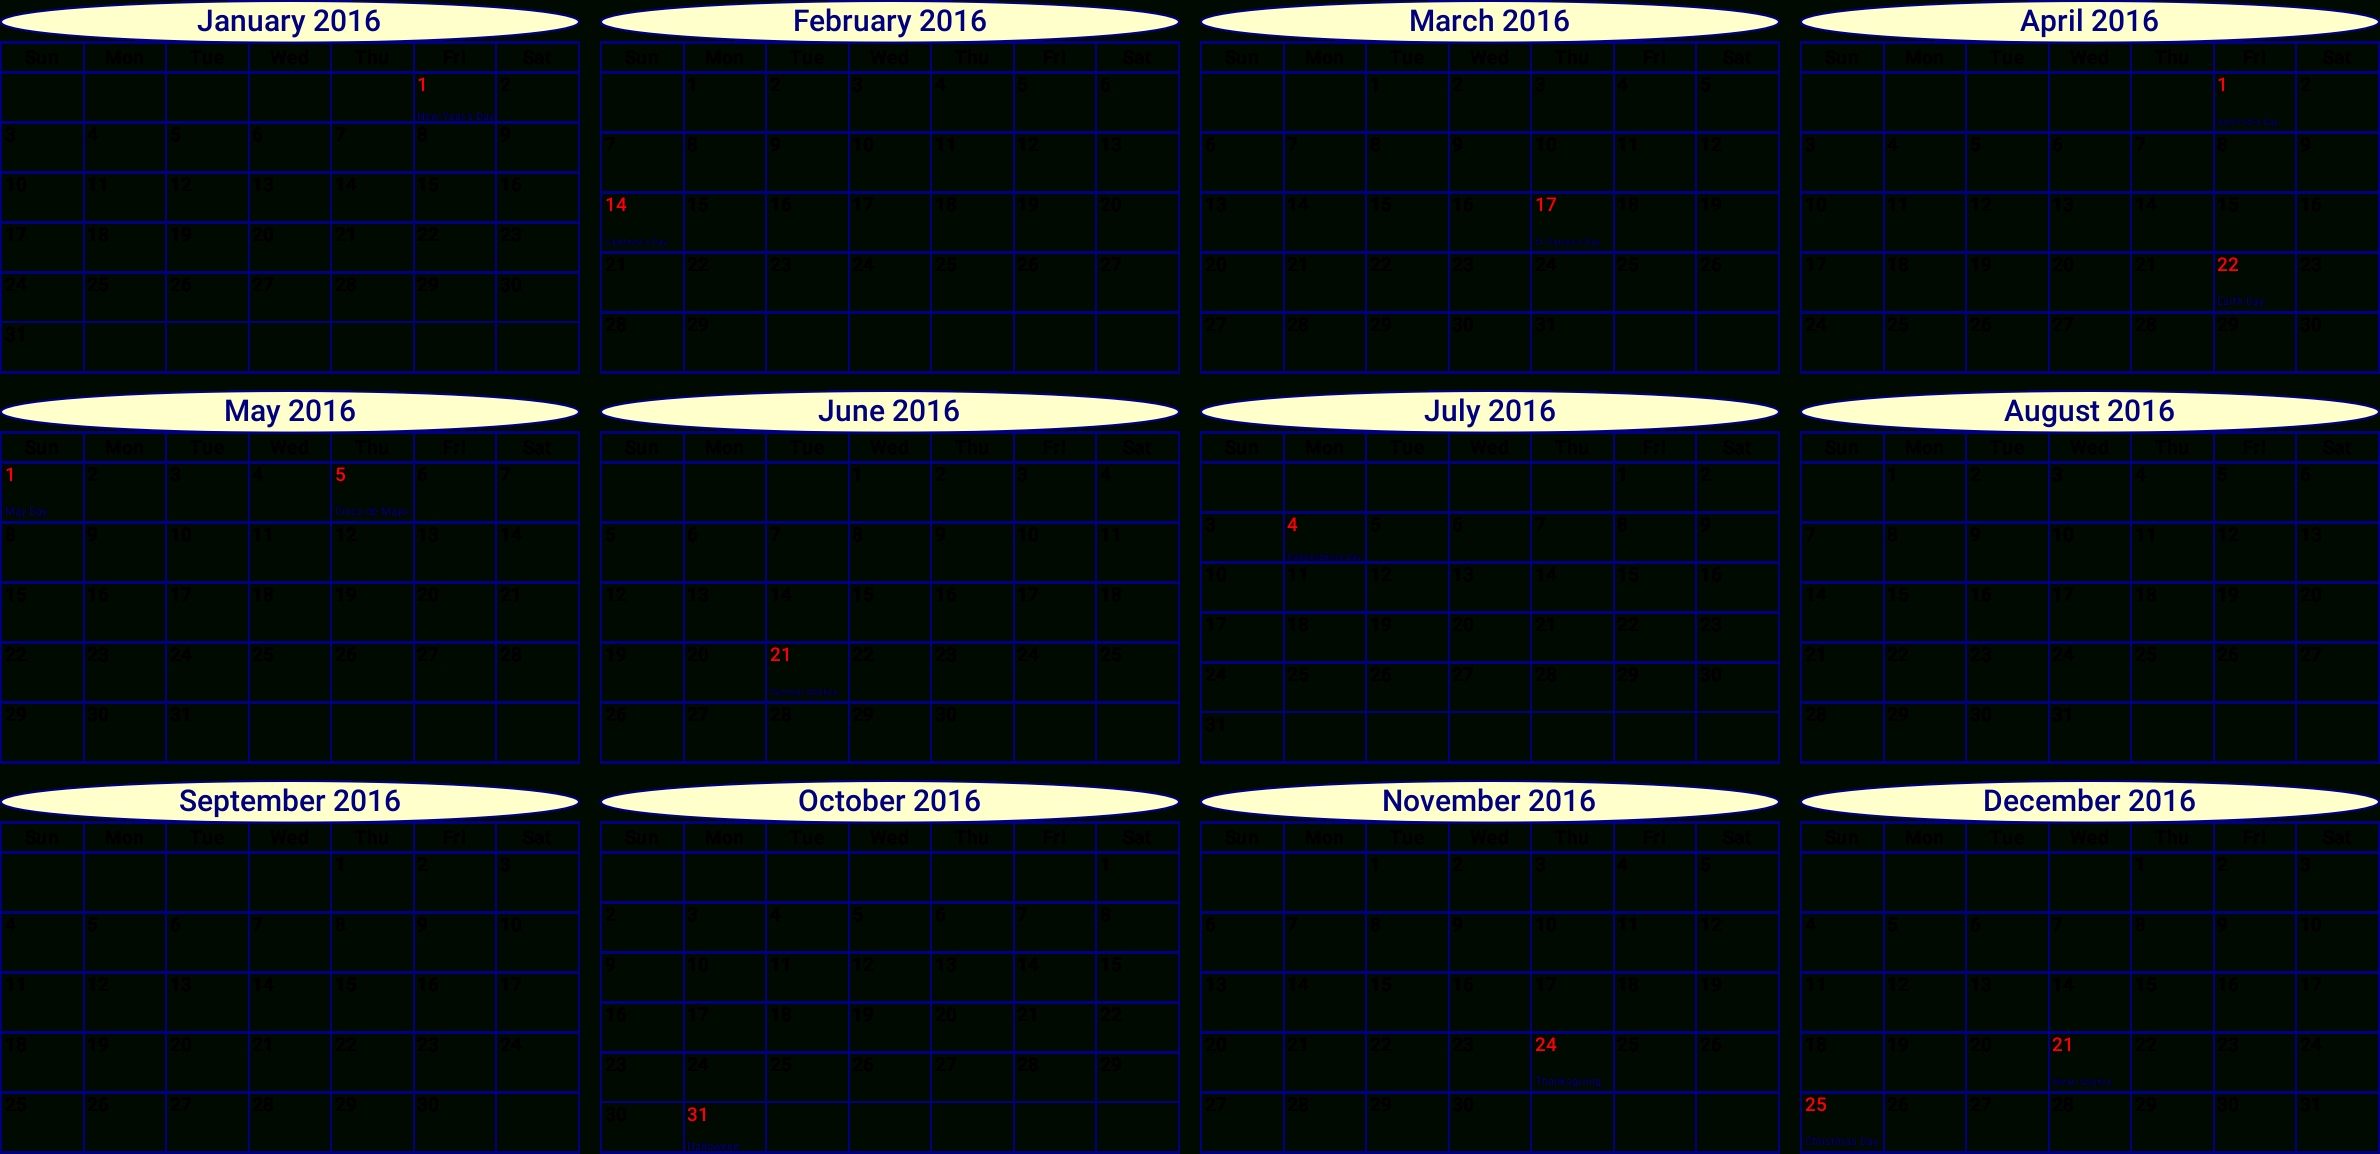 Png Of The Months Of The Year Monthly & Transparent Images #9172 - Pngio Months Of Year Calendar